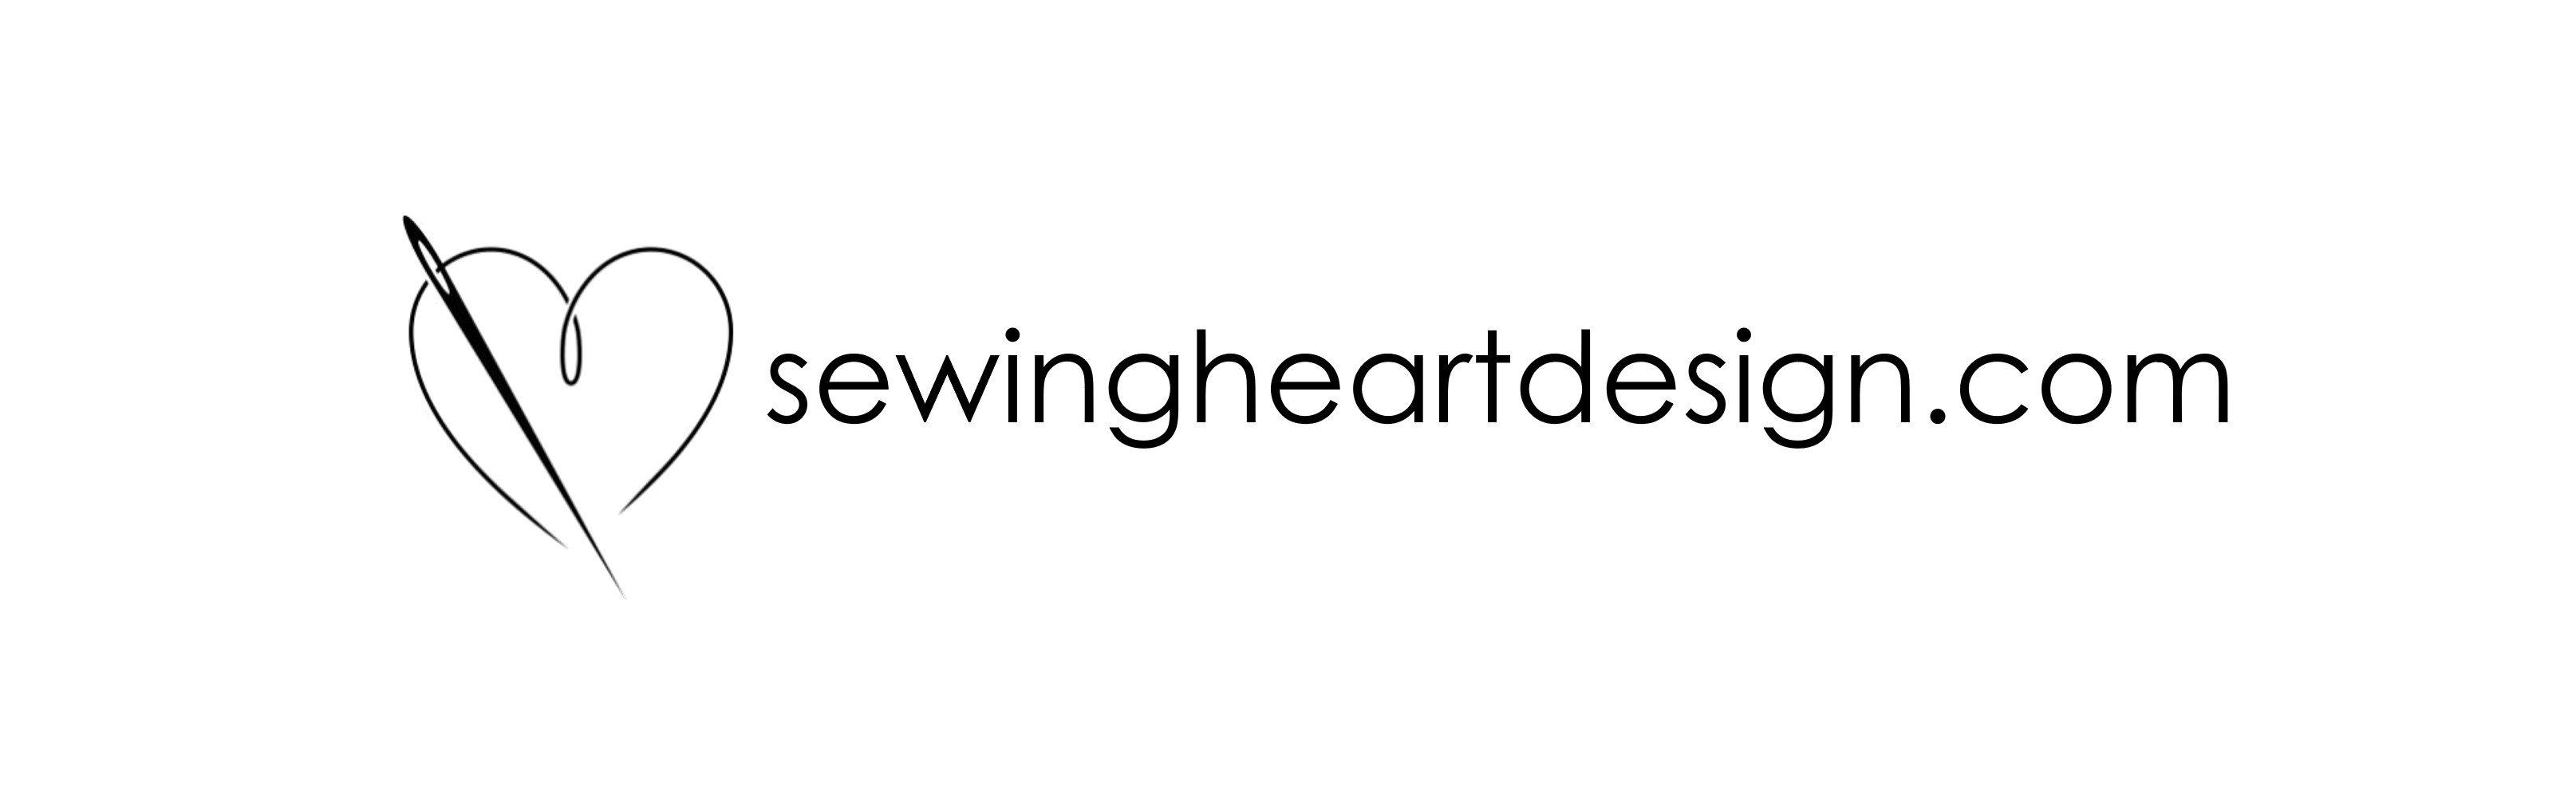 Sewingheartdesign